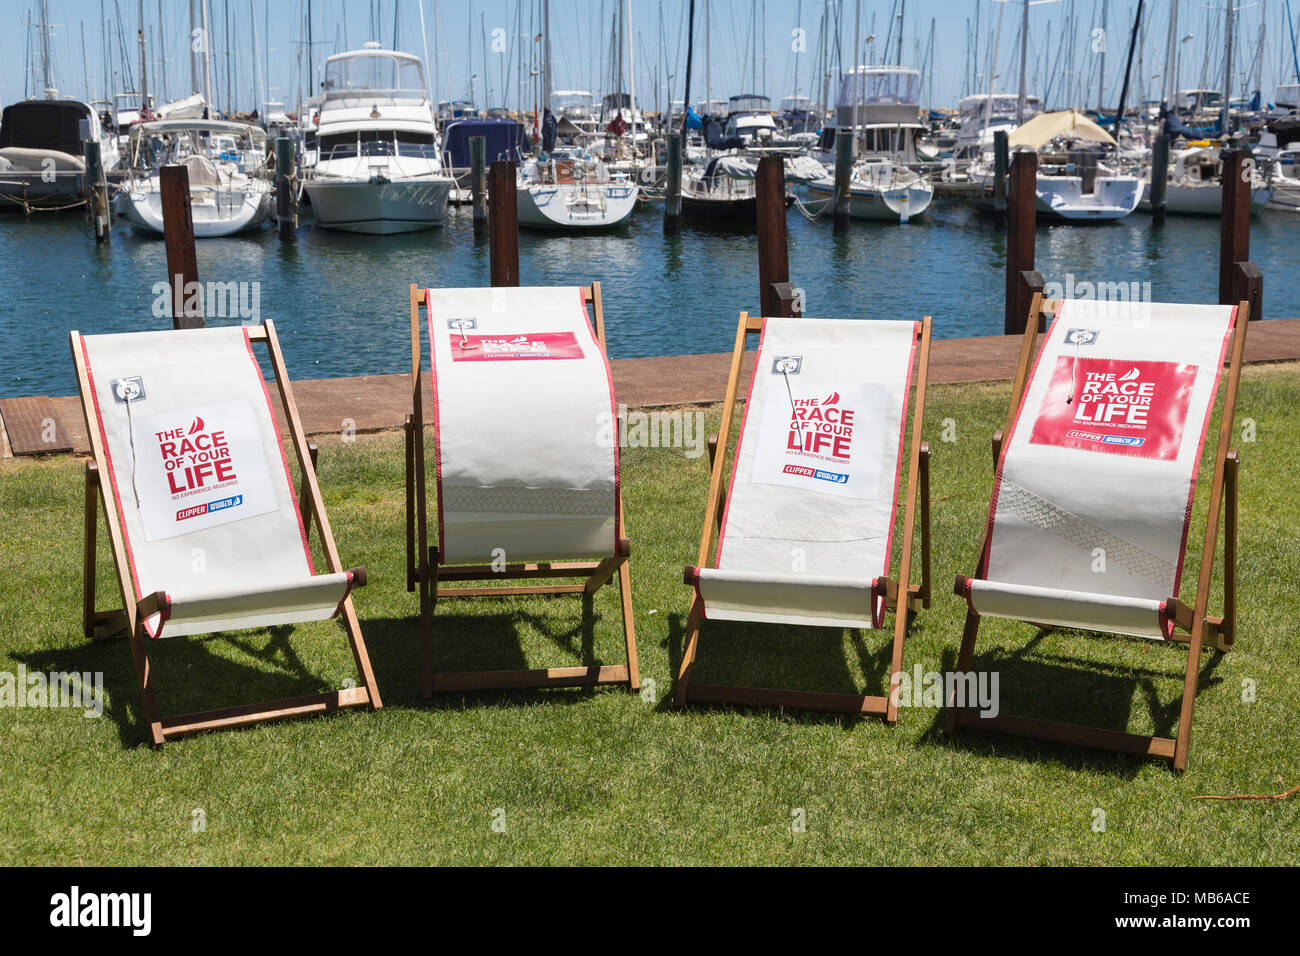 Chairs set out at Freemantle, Perth, Western Australia at a stopover point during the 2017/18 Clipper Round the World Race - Stock Image